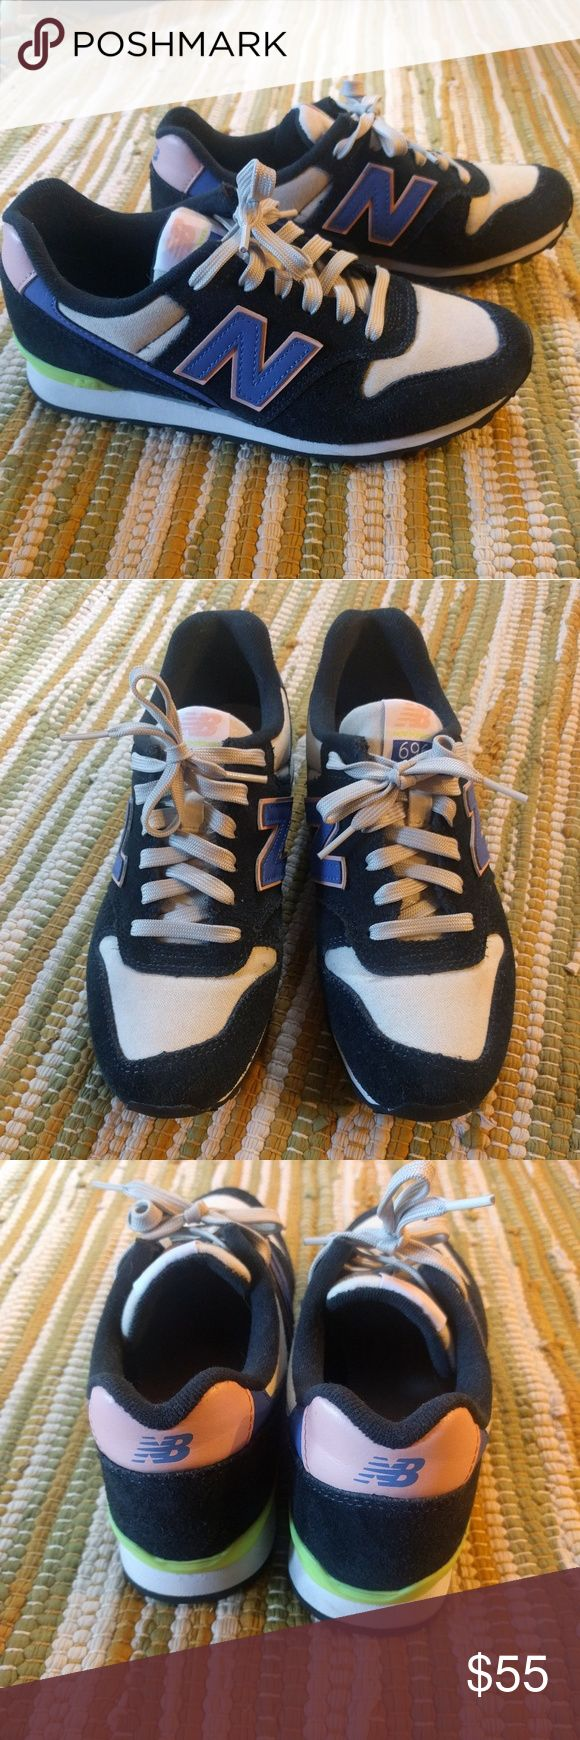 New Balance 696 sz 7 Nearly new New Balance classic sneaks. Cobalt blue, pink, and neon yellow. Navy blue suede and ivory canvas. New Balance Shoes Sneakers